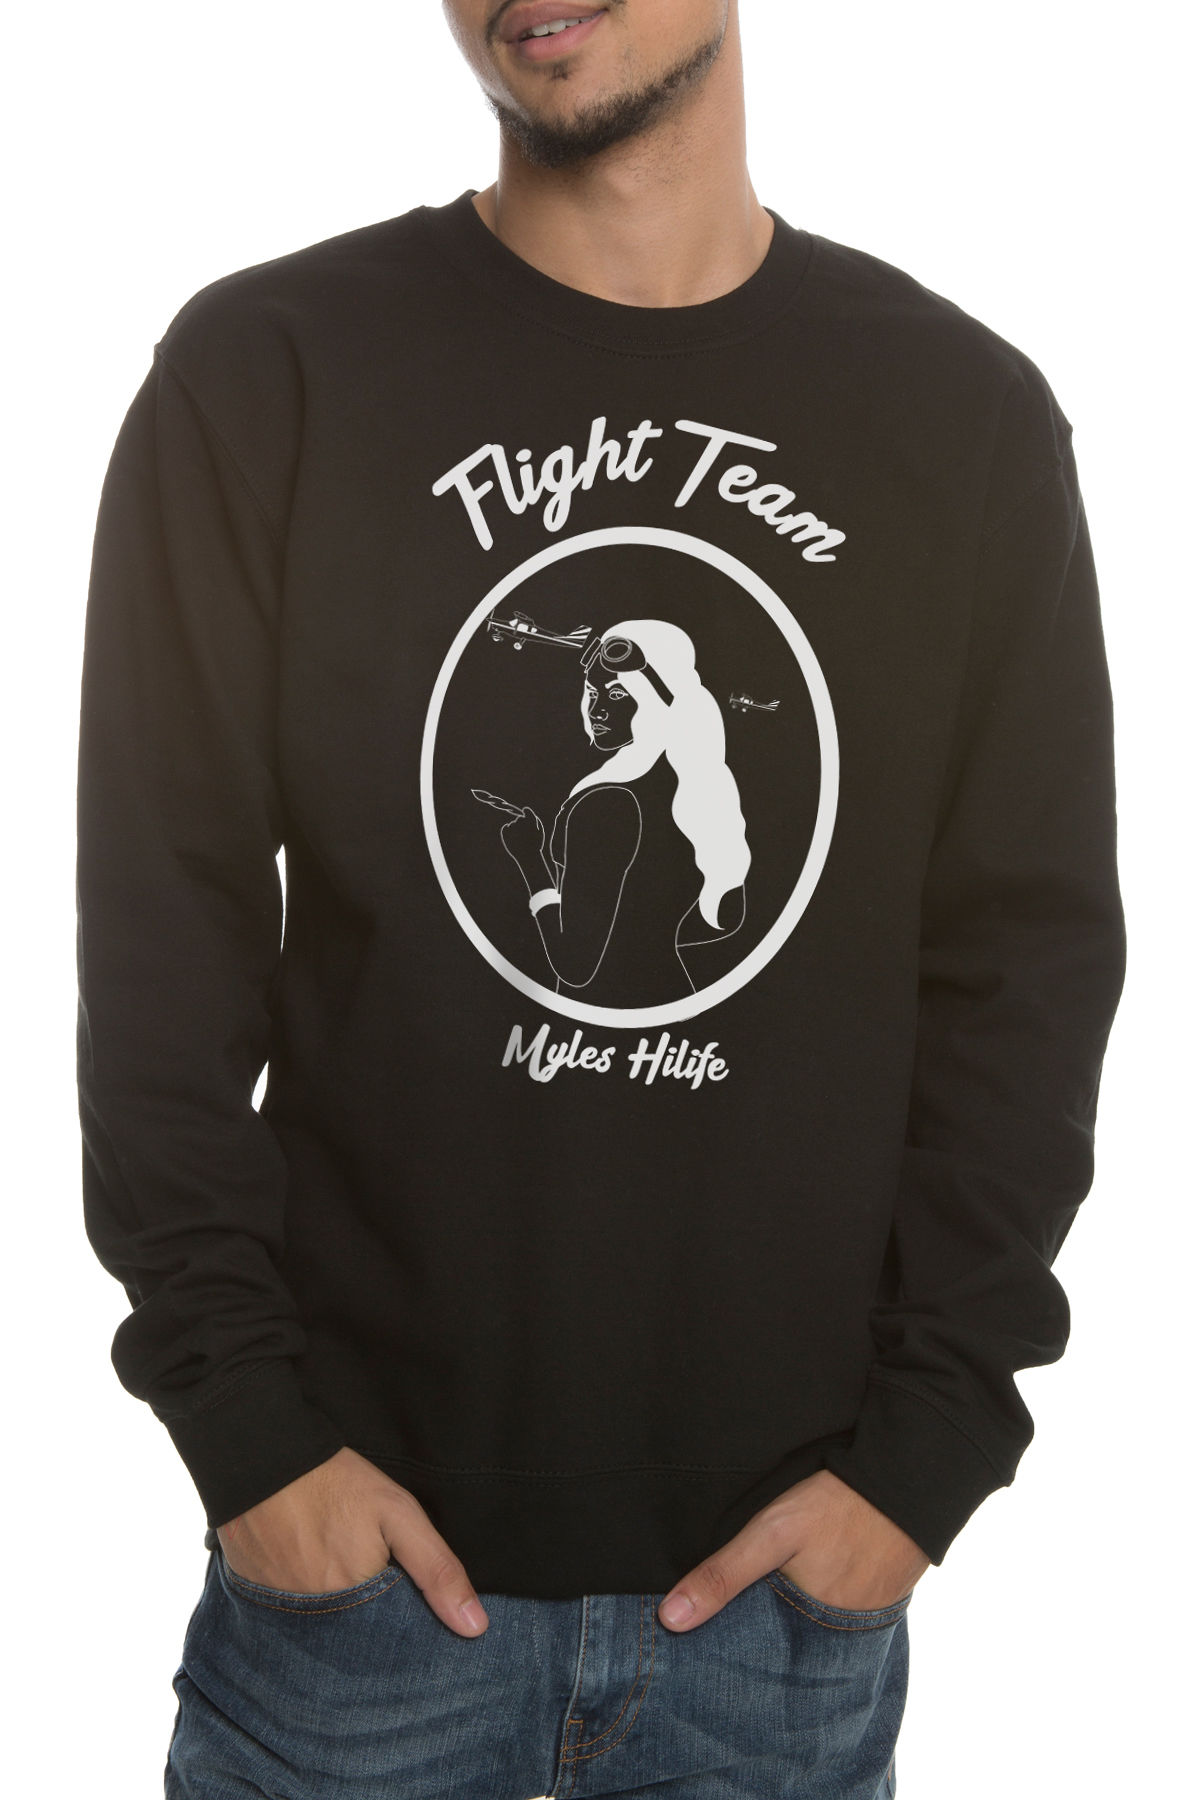 Image of The Flight Team Crewneck Sweatshirt in Black